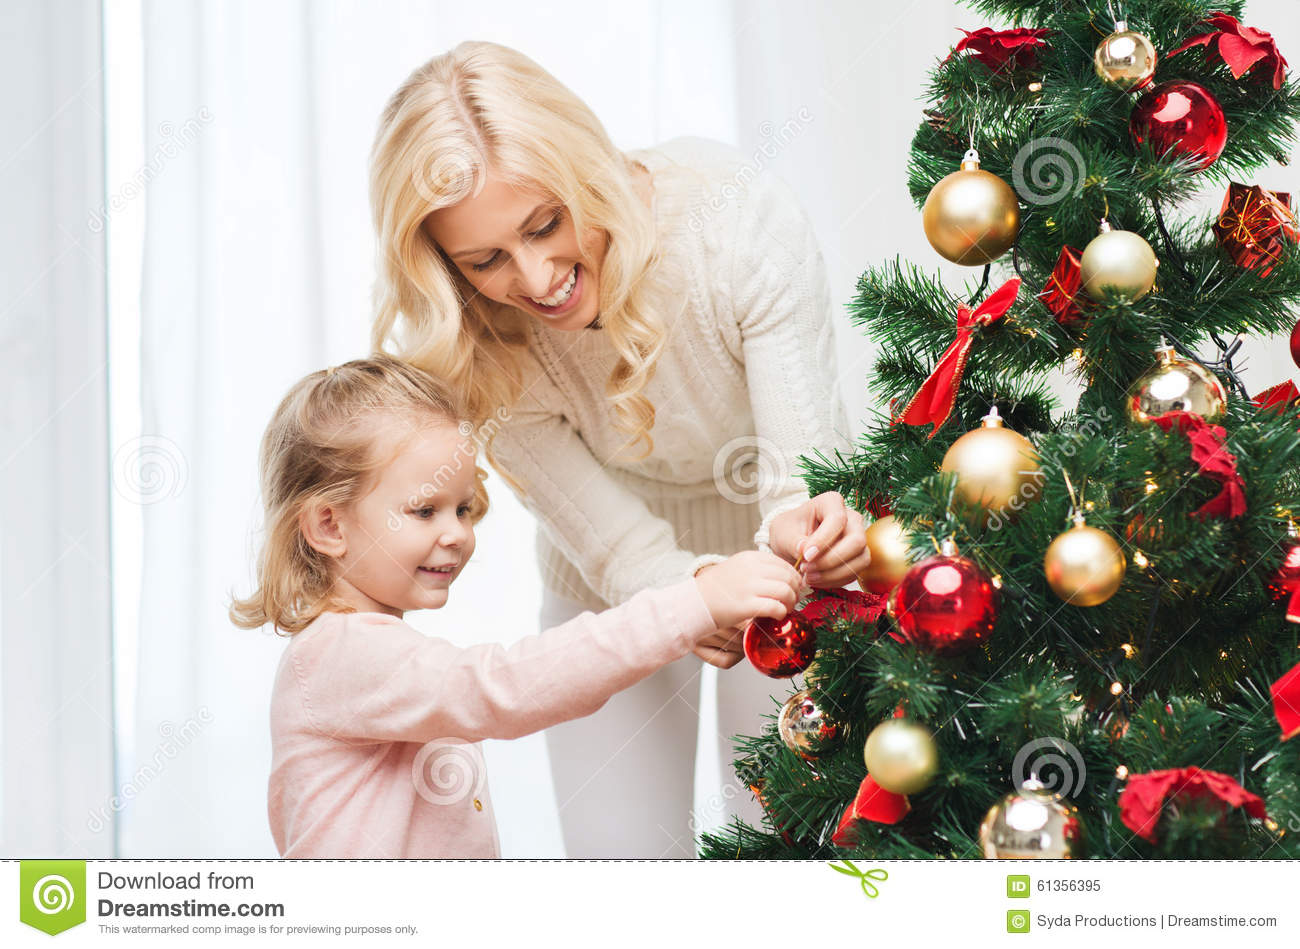 People Decorating For Christmas contemporary people decorating christmas tree royalty free stock